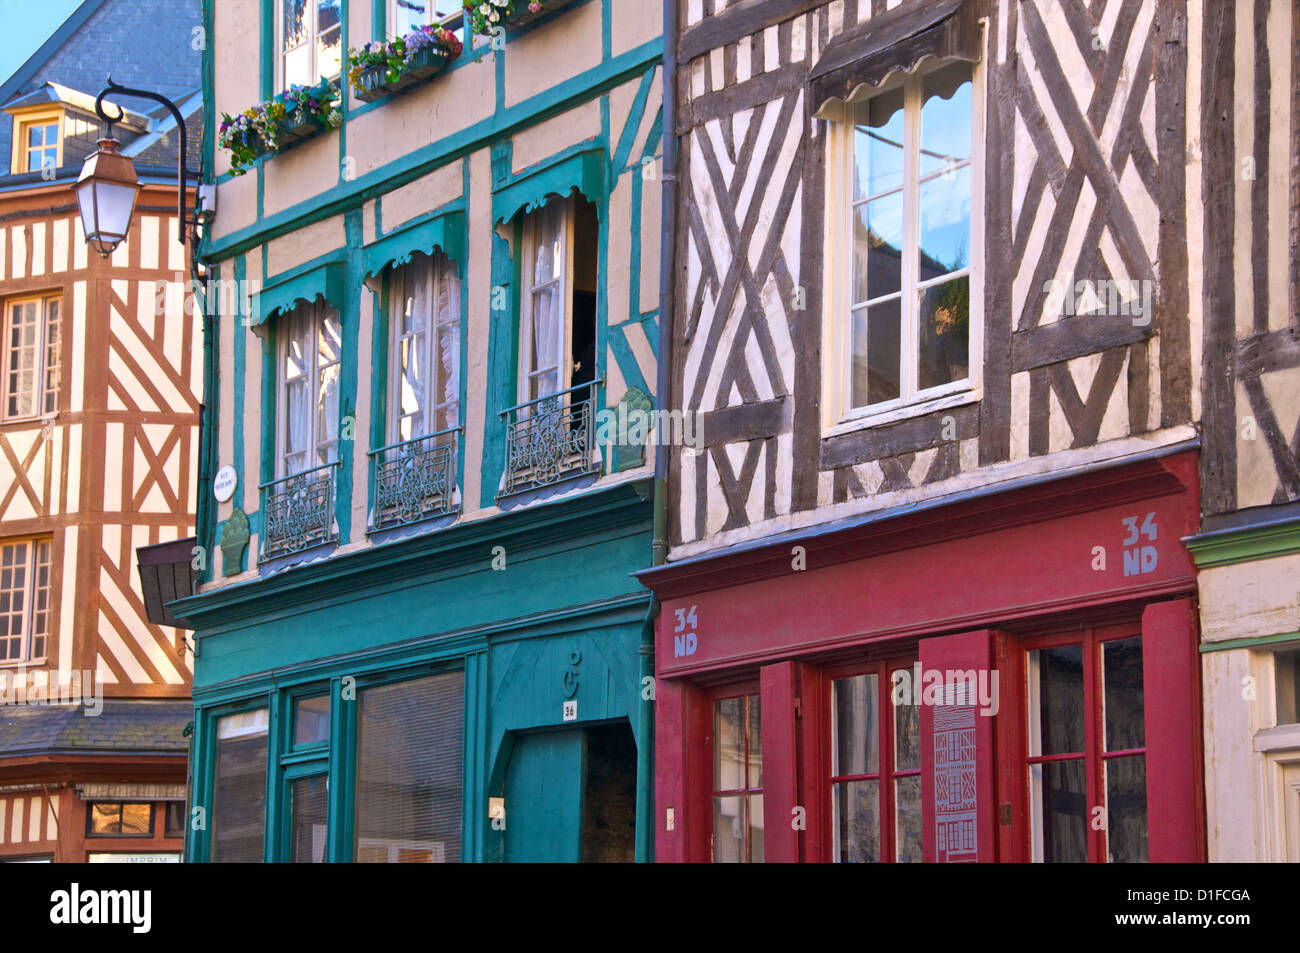 Typical half timbered Norman houses, Honfleur, Calvados, Normandy, France, Europe - Stock Image